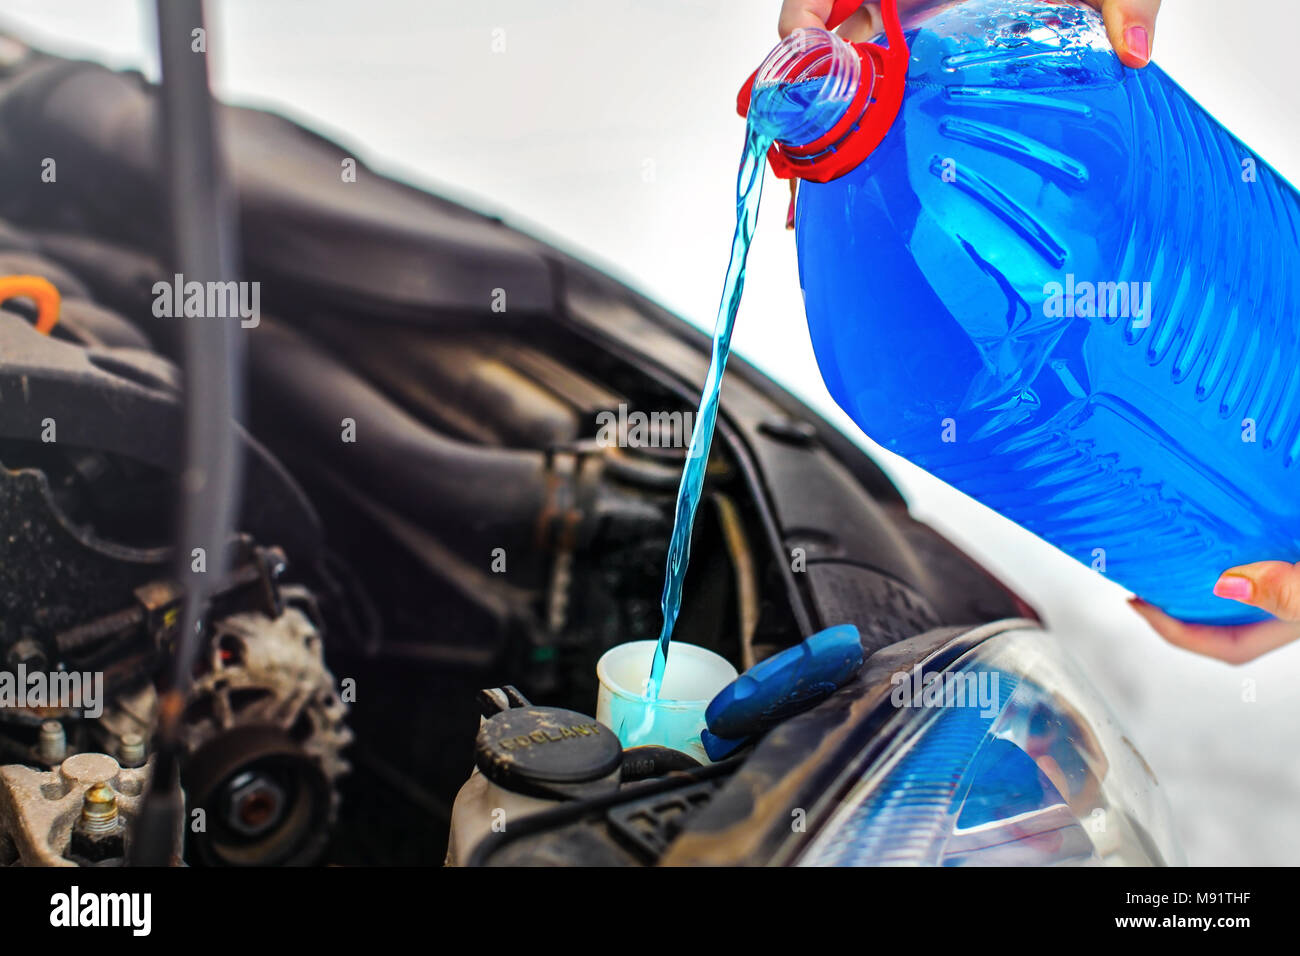 Anti Freeze Stock Photos Images Alamy Frozen Engine Coolant Woman Pouring Antifreeze Car Screen Wash Liquid Into Dirty From Blue Water Container